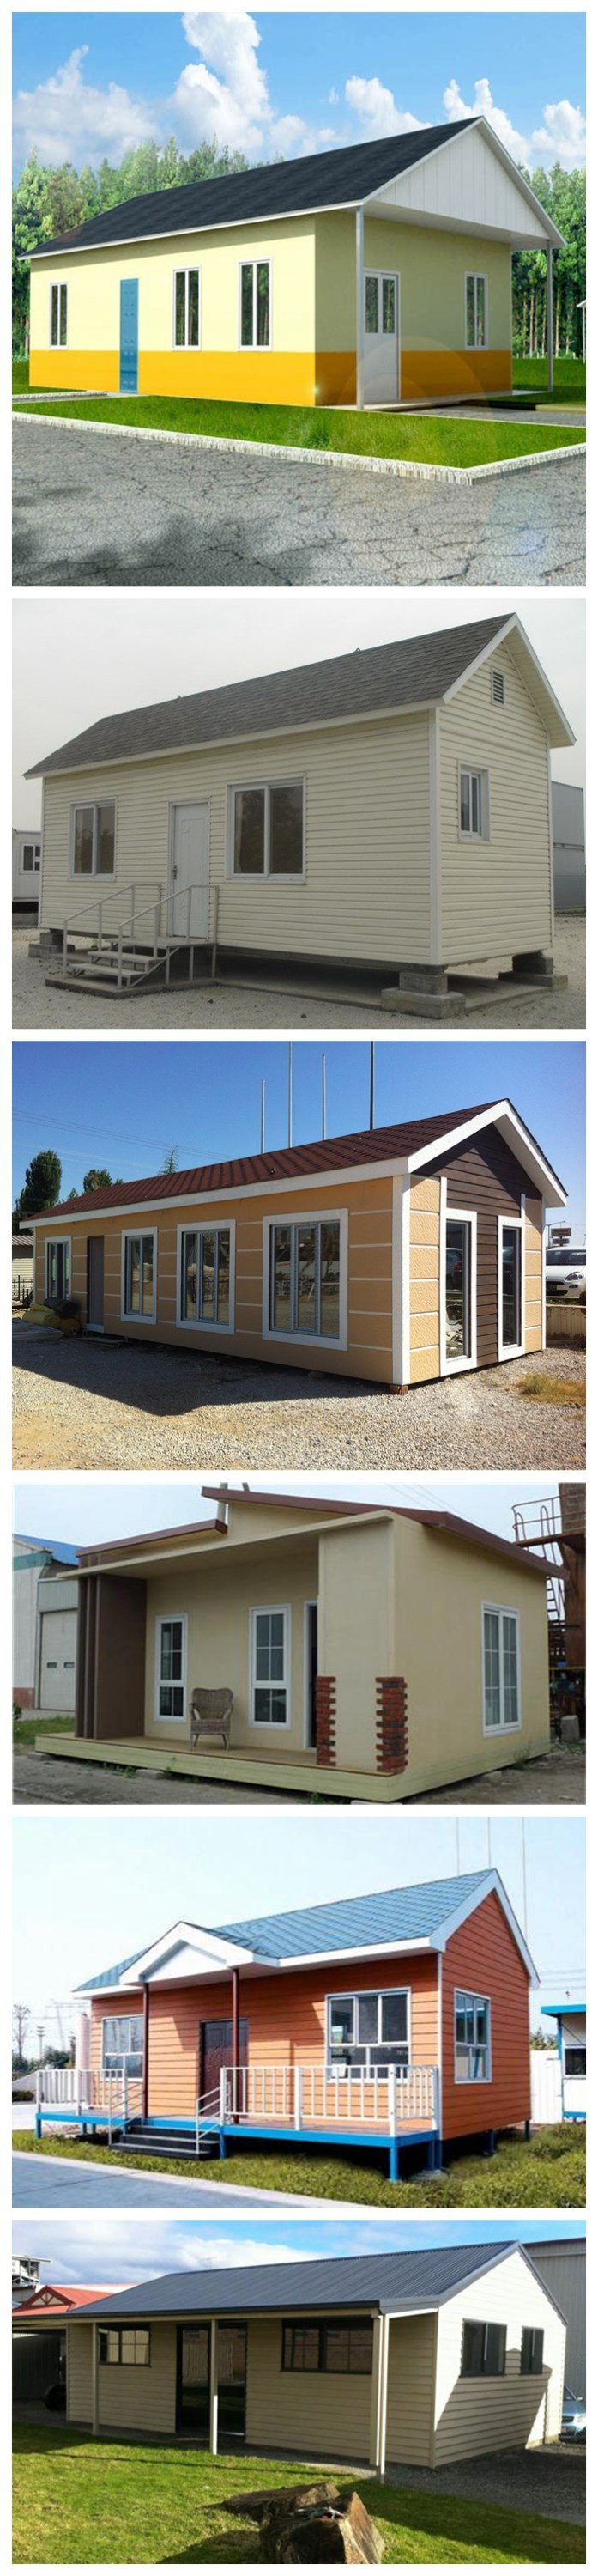 Small home kits at lowe s - Small Steel House Lowes Home Kits Prefab House In Davao City